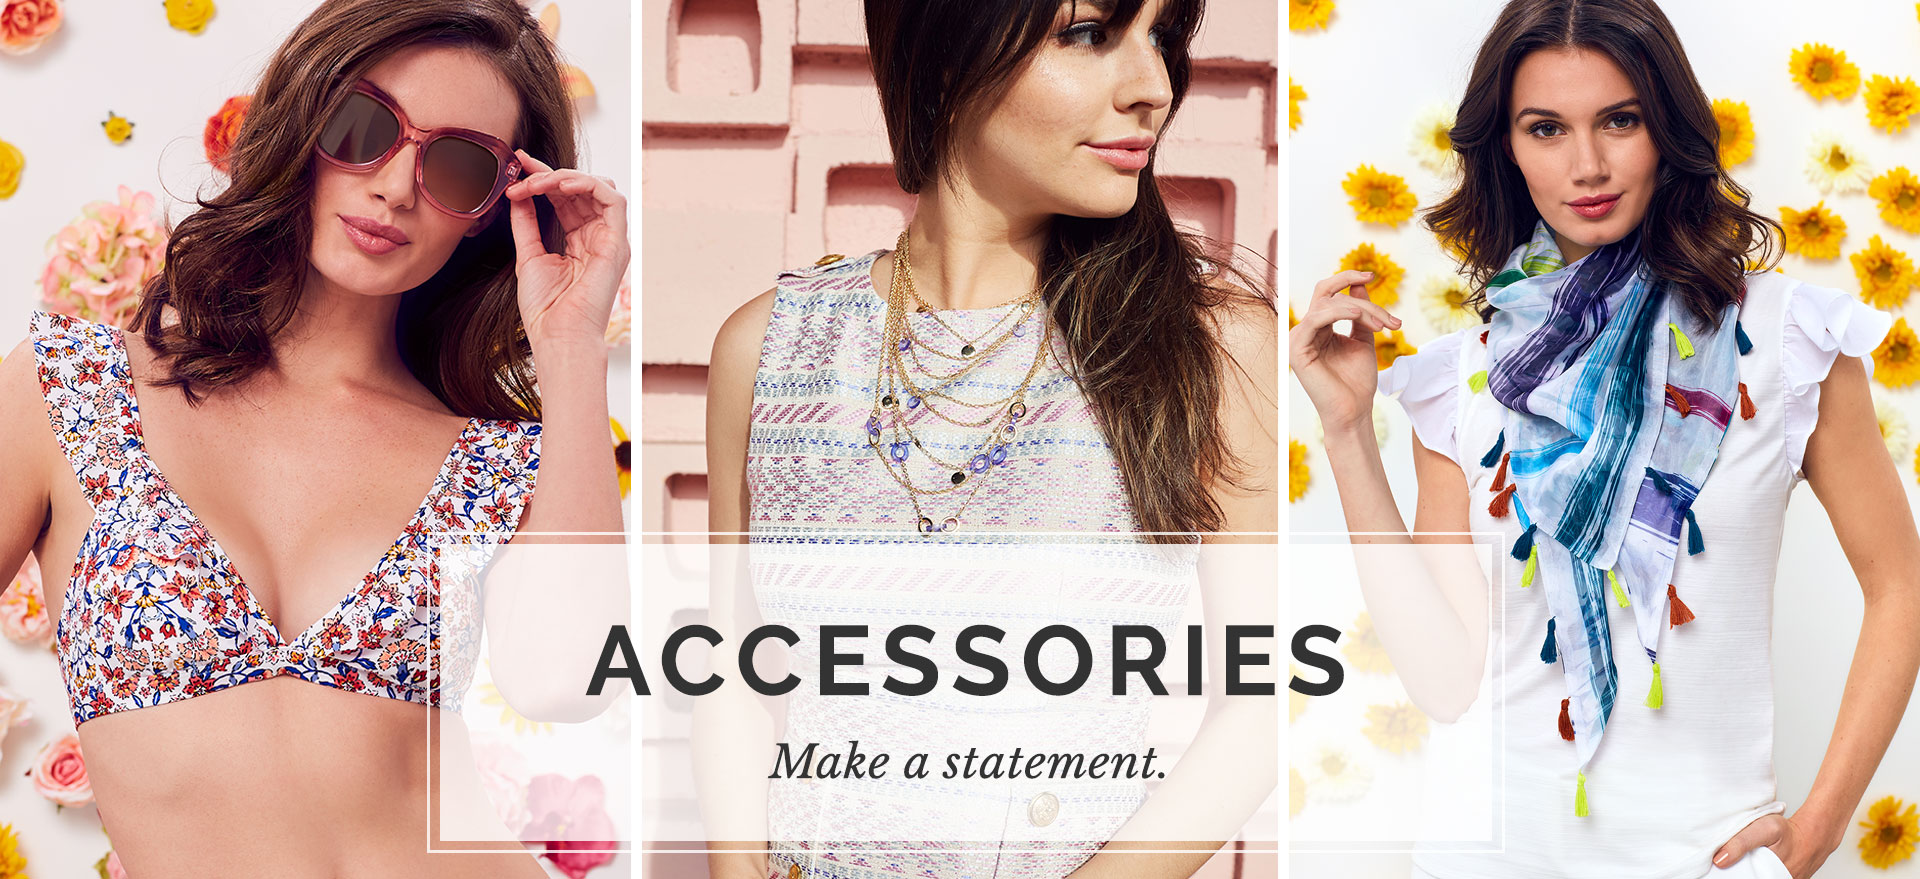 Layer It On Accessories Make the Outfit